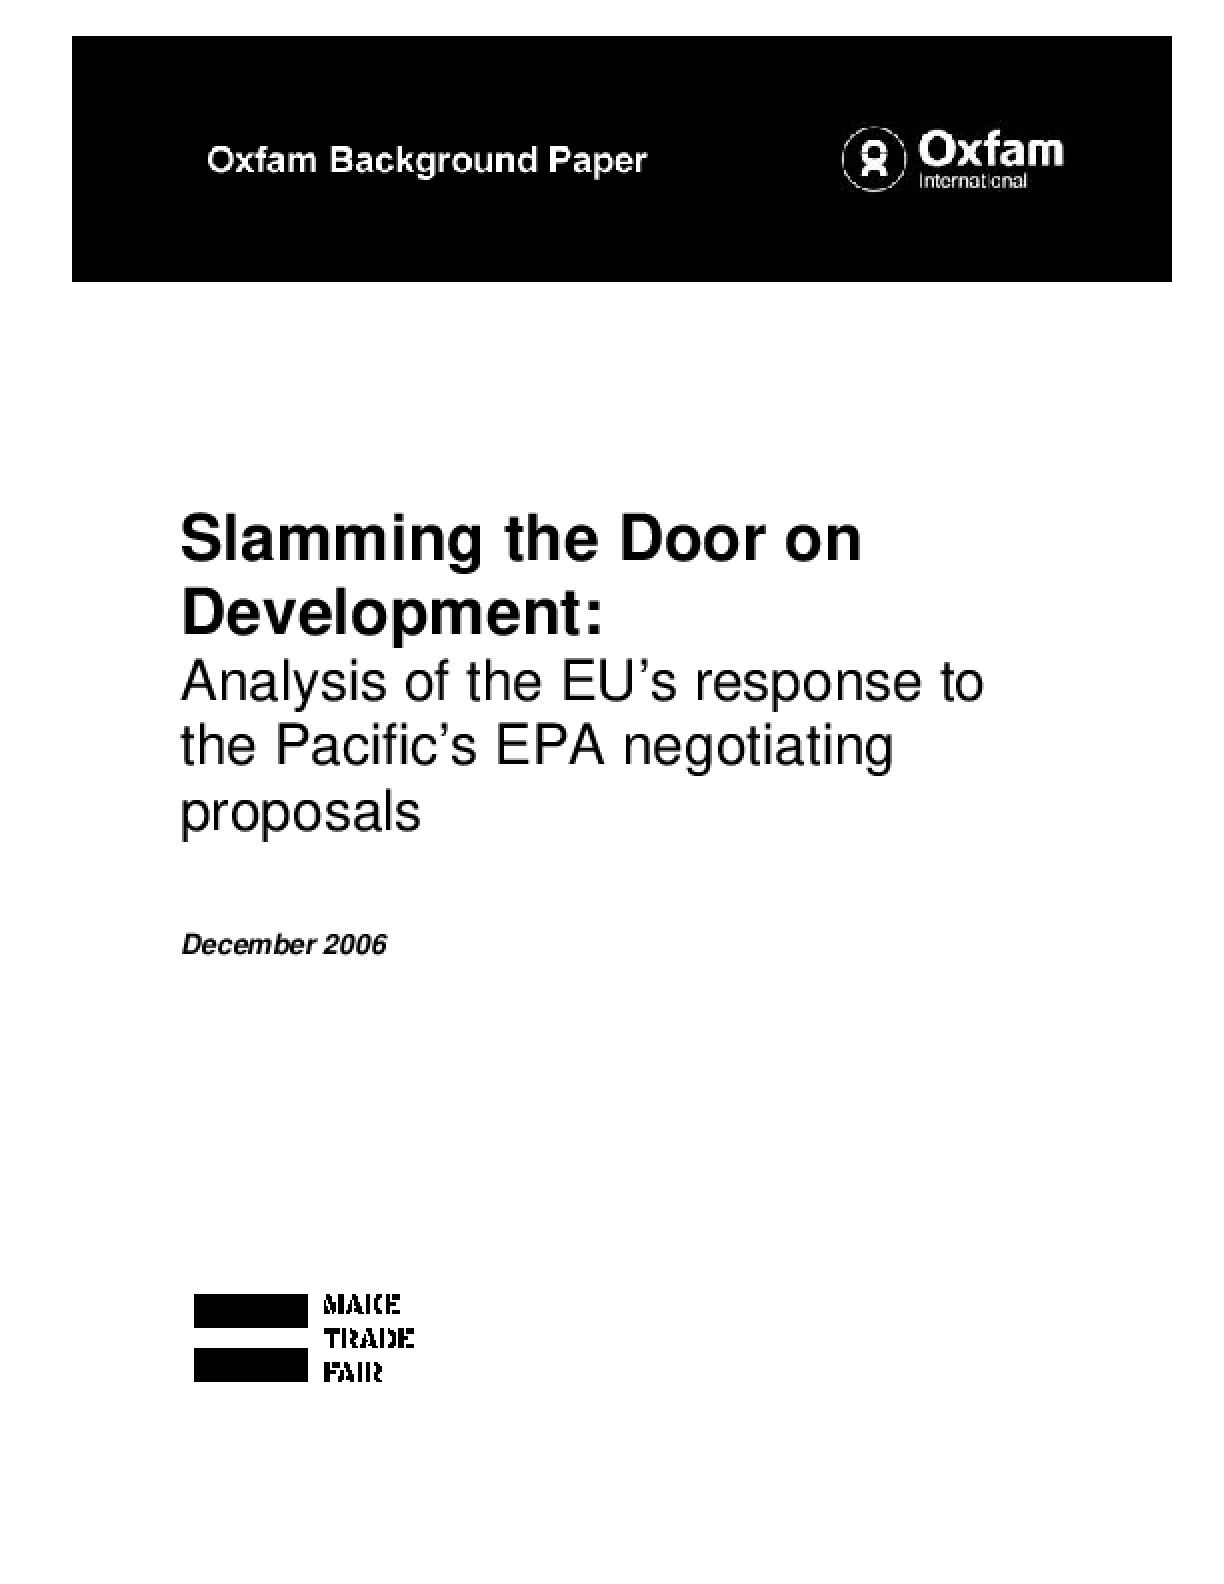 Slamming the Door on Development: Analysis of the EU's Response to the Pacific's EPA Negotiating Proposals